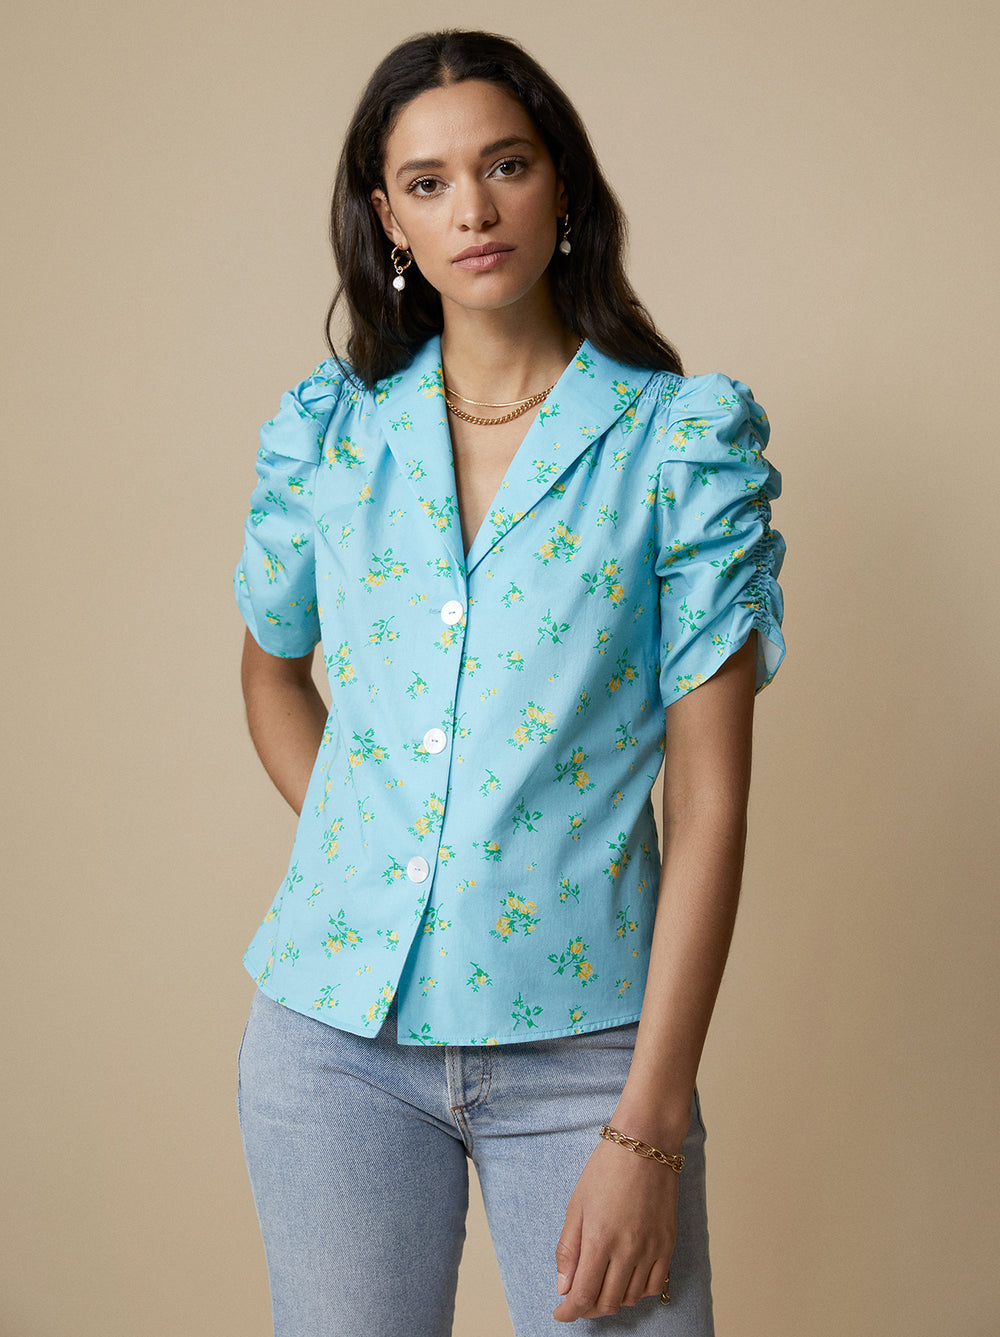 Lyla Blue Floral Cotton Top by KITRI Studio